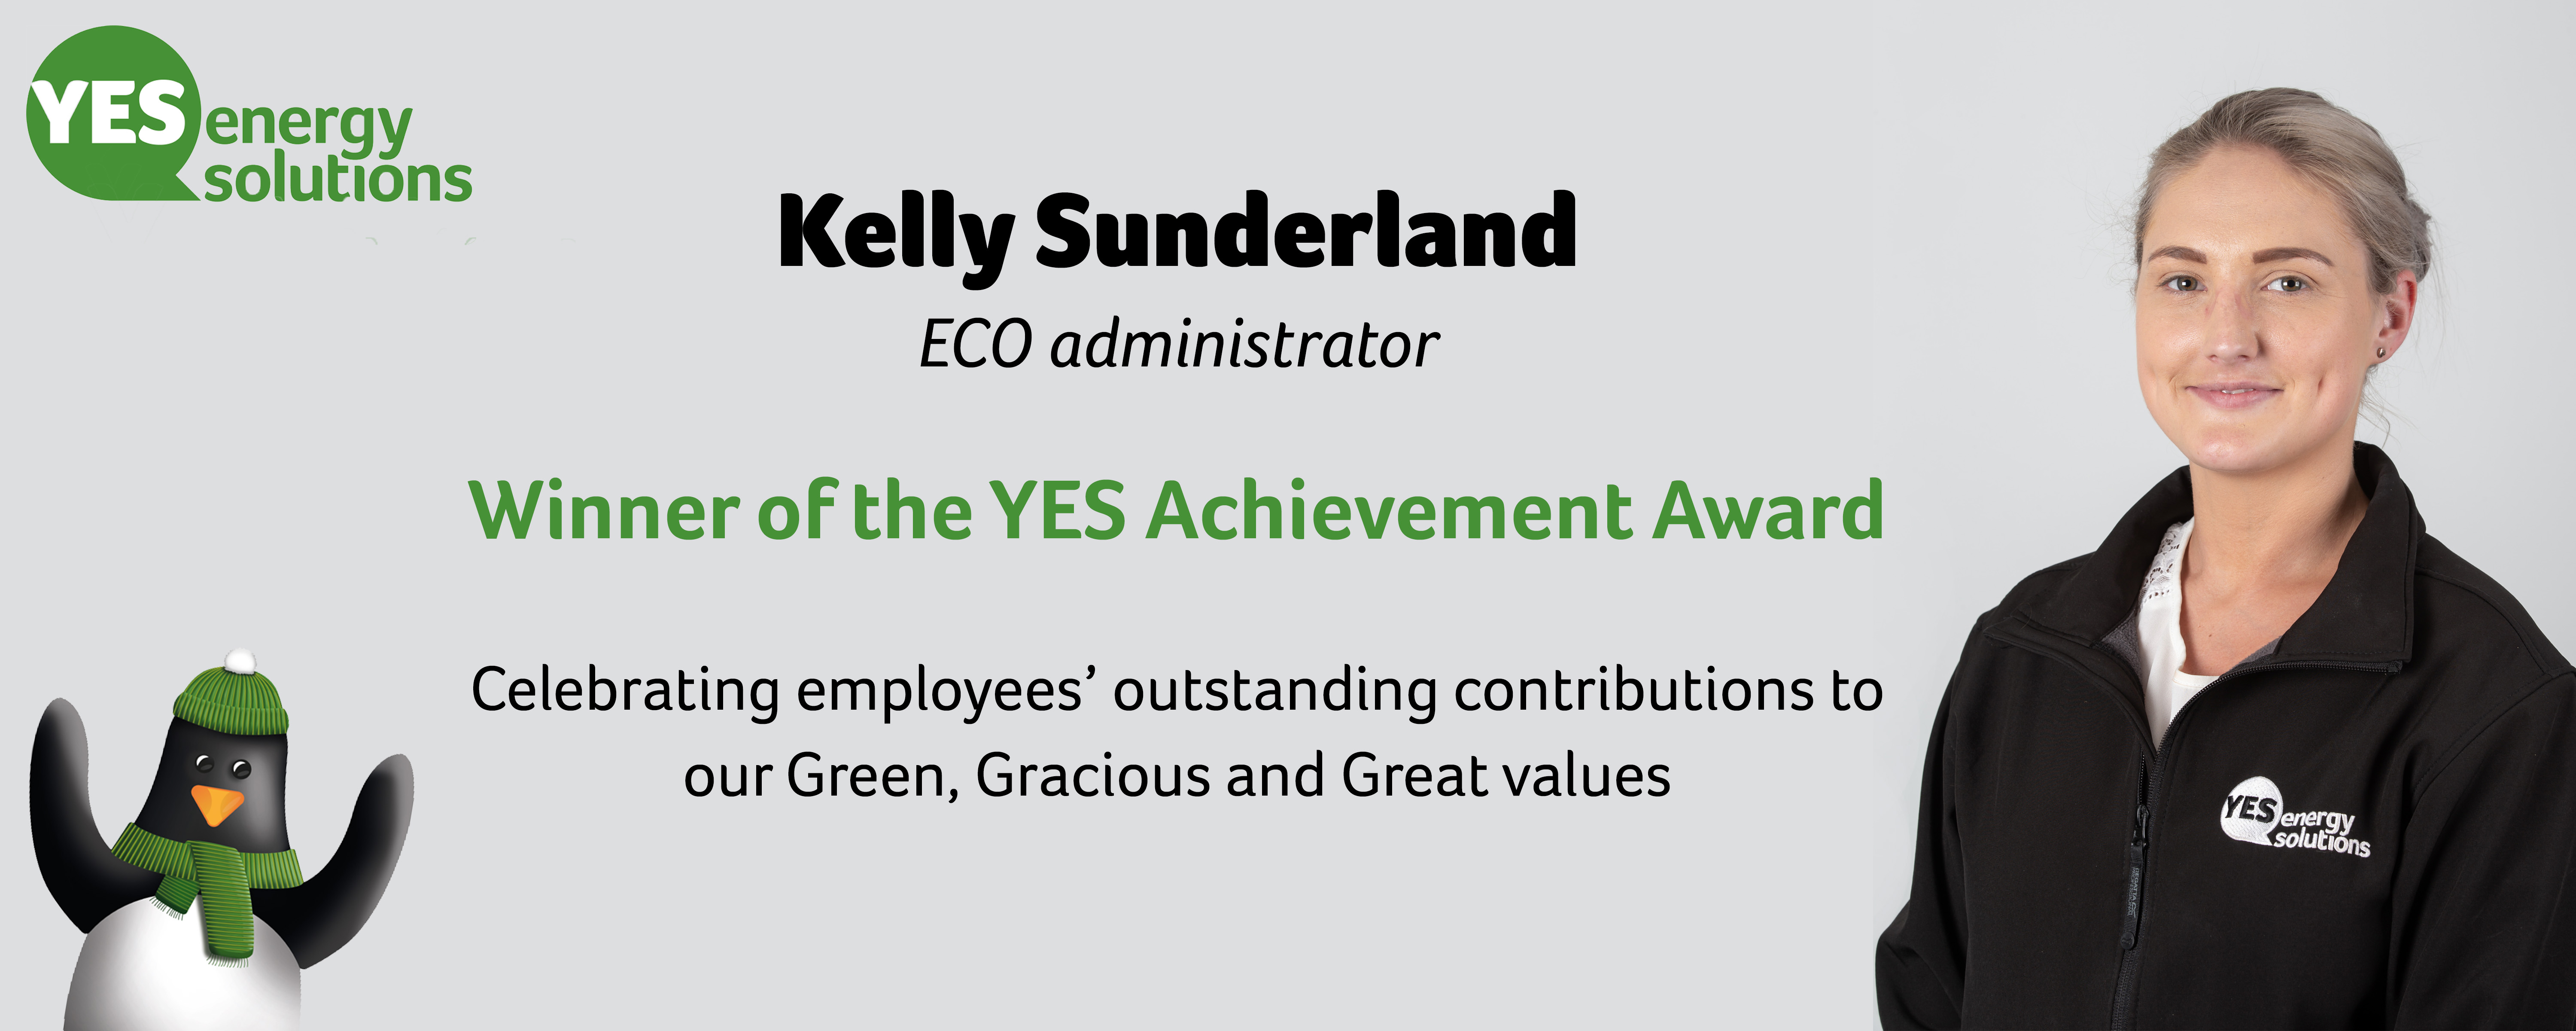 Kelly Sunderland wins the innaugral YES Achievement Award